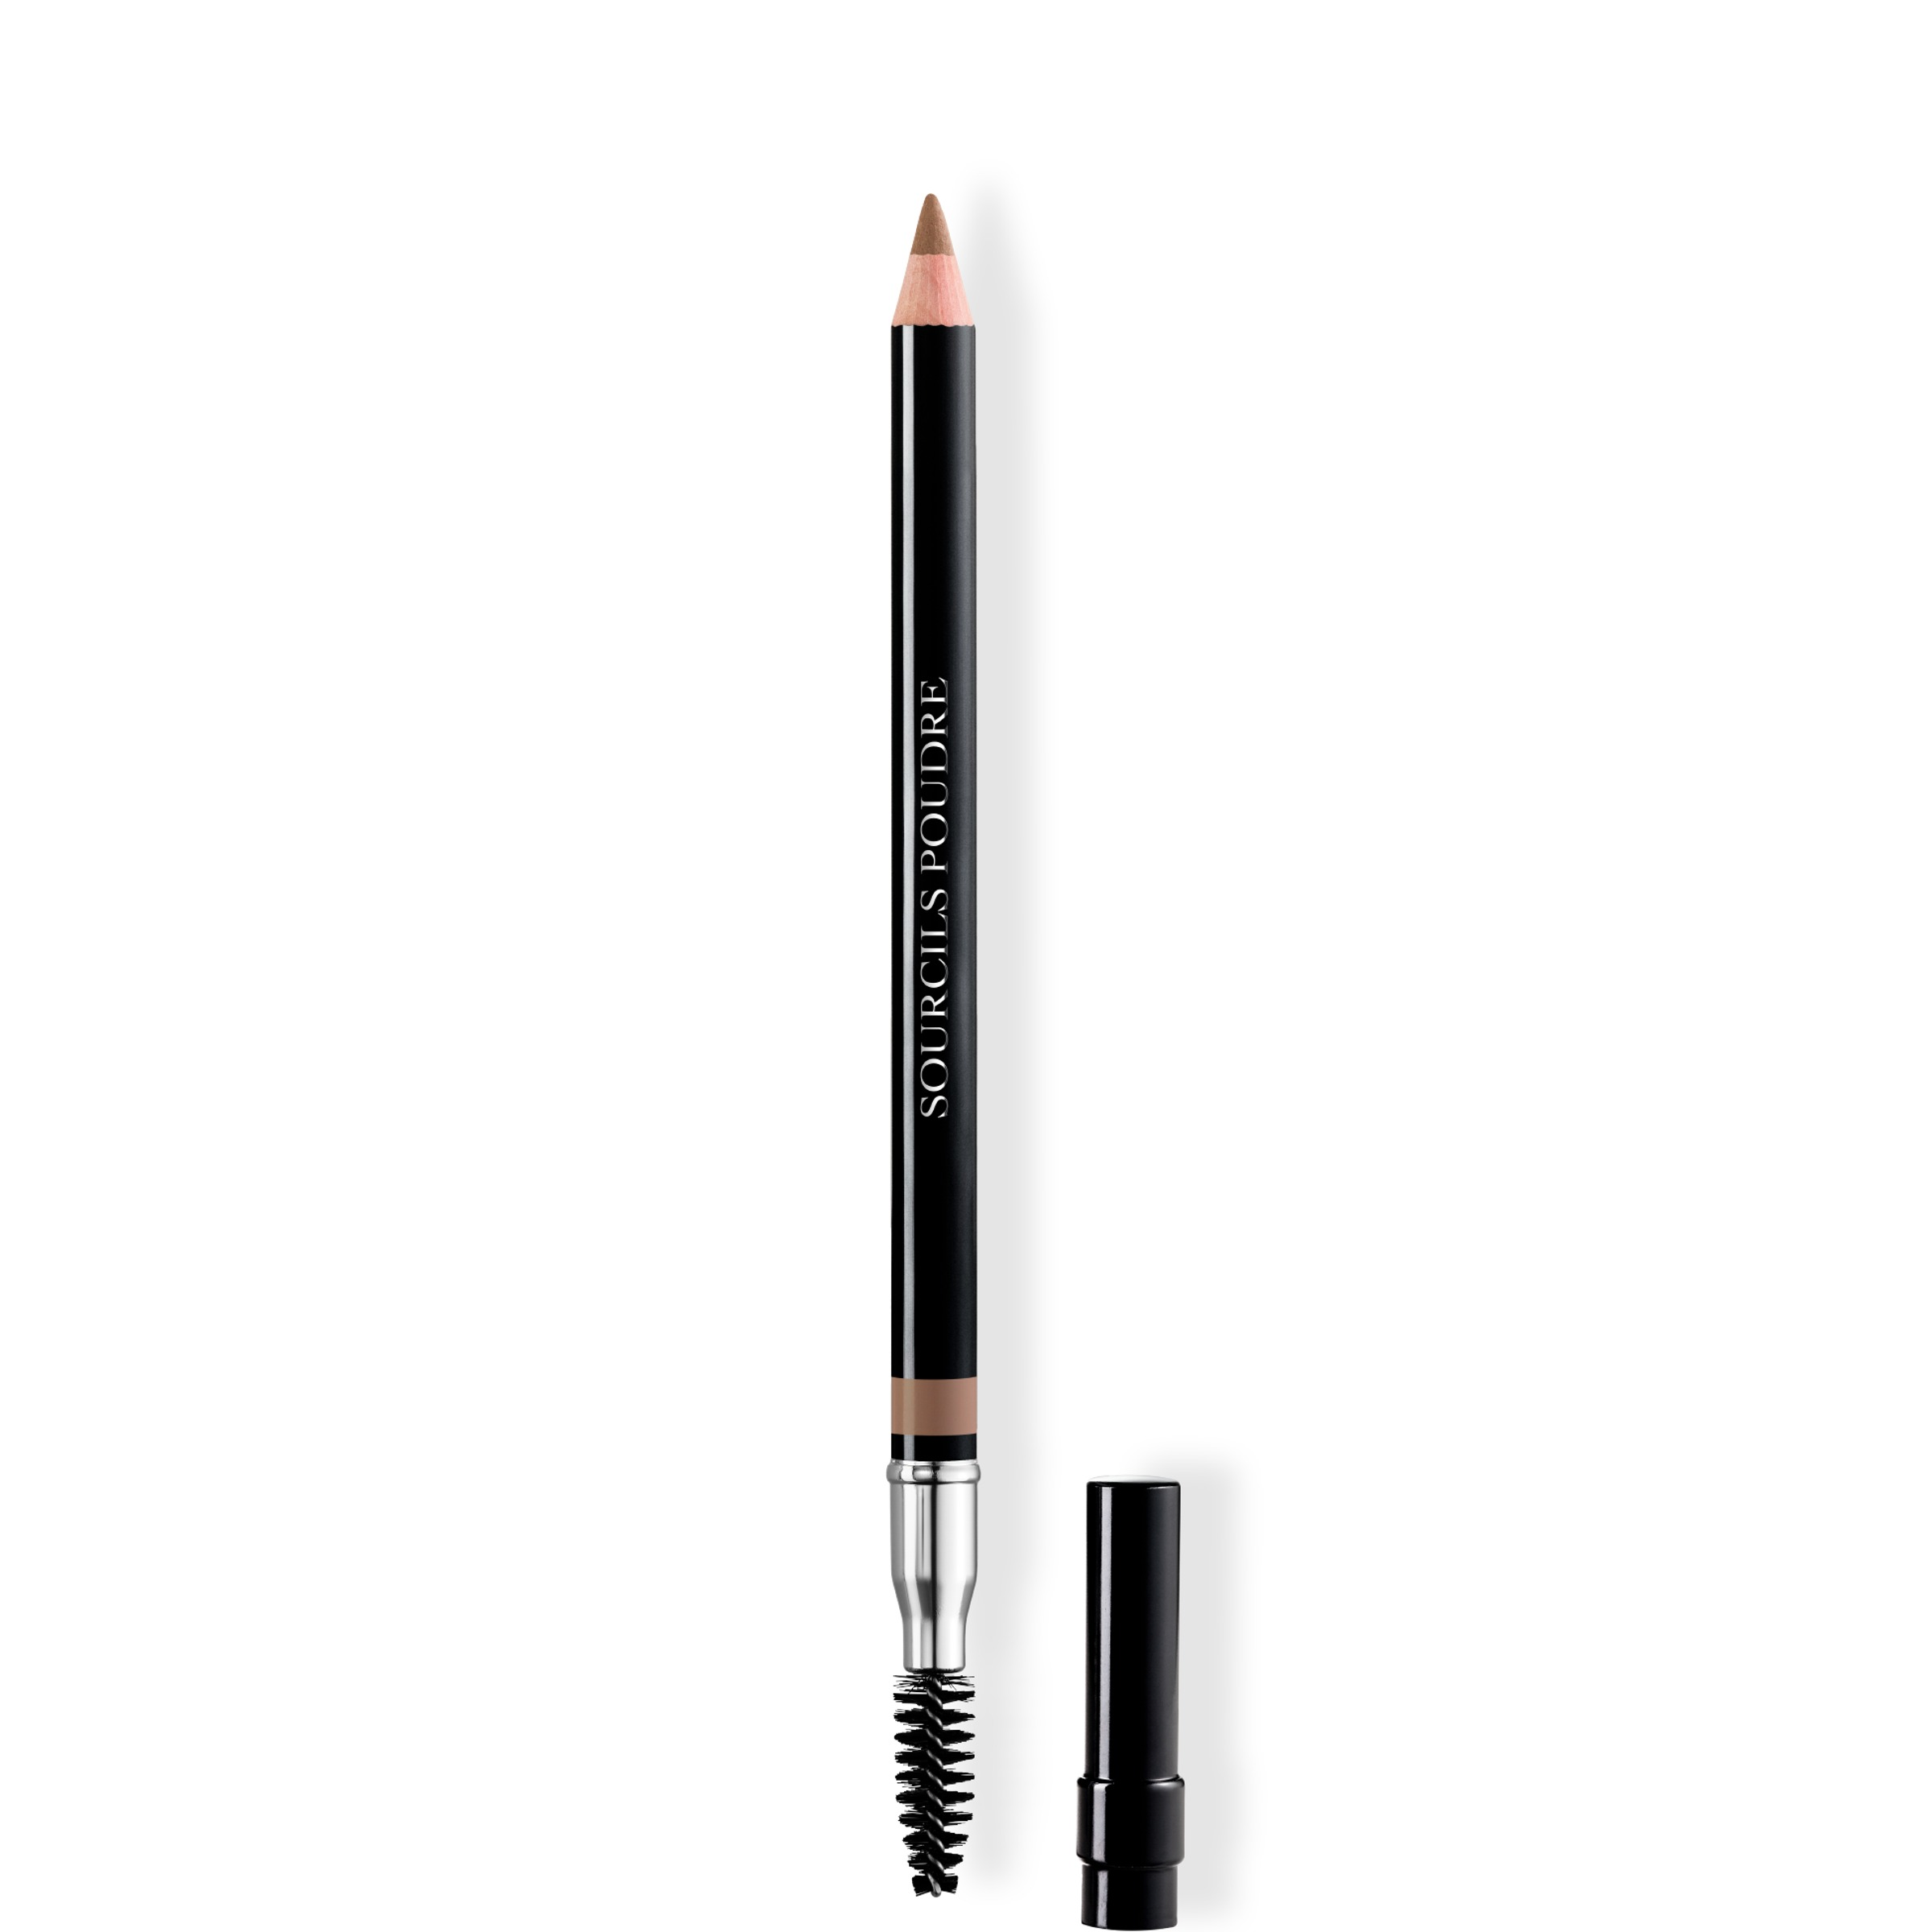 Crayon Sourcils Eyebrow Pen 433 Ash Blondie